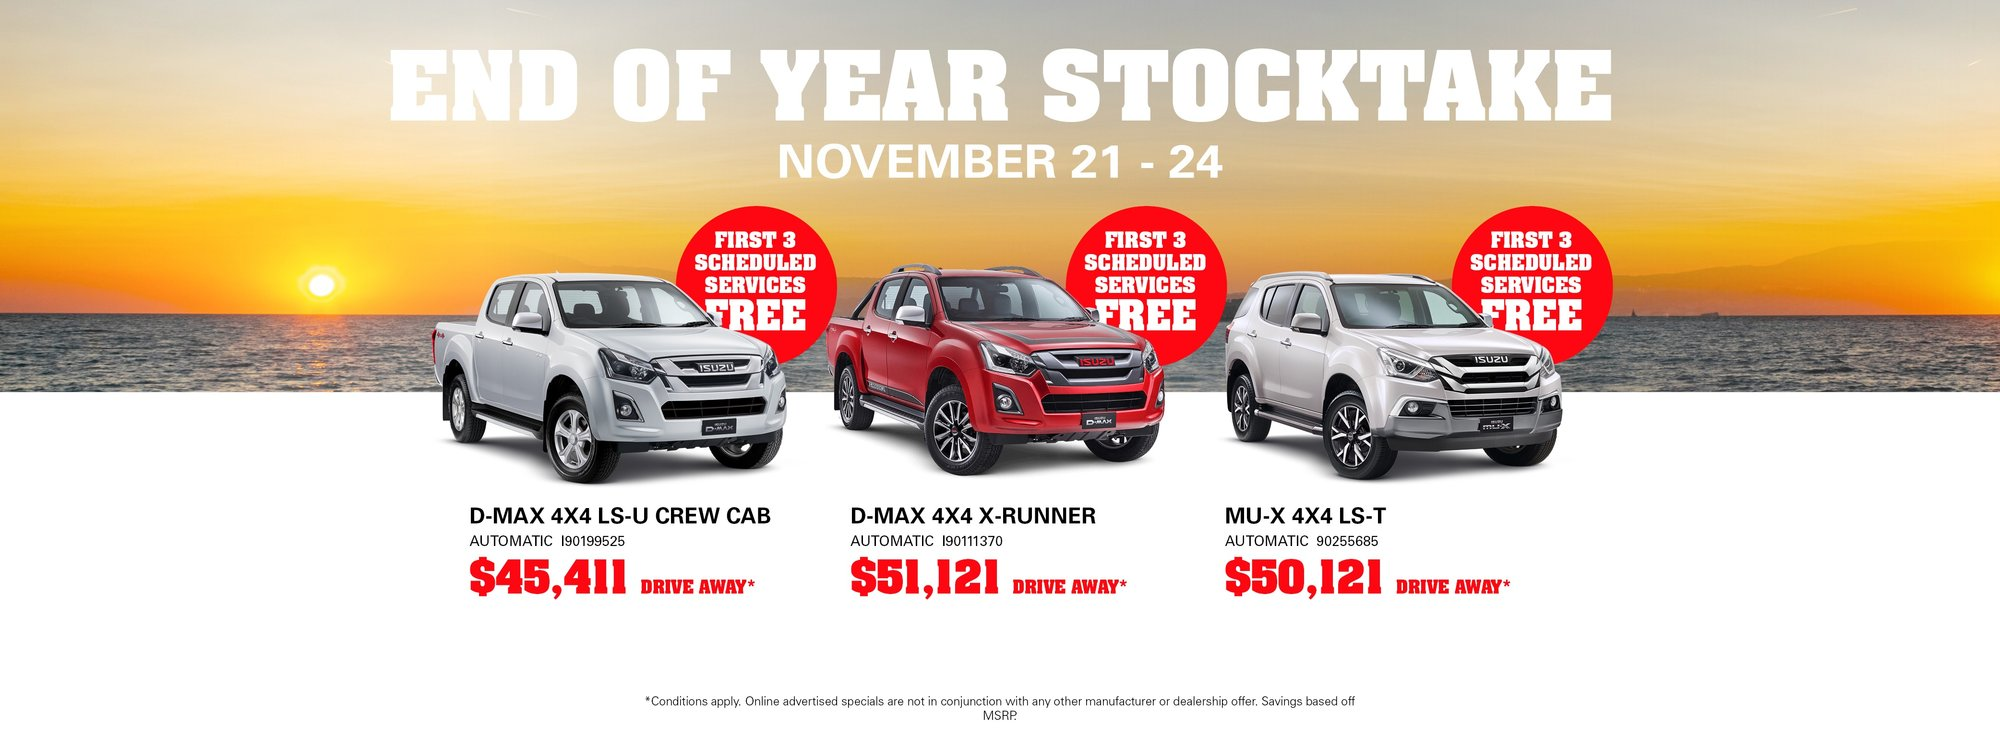 END OF YEAR STOCK CLEARANCE